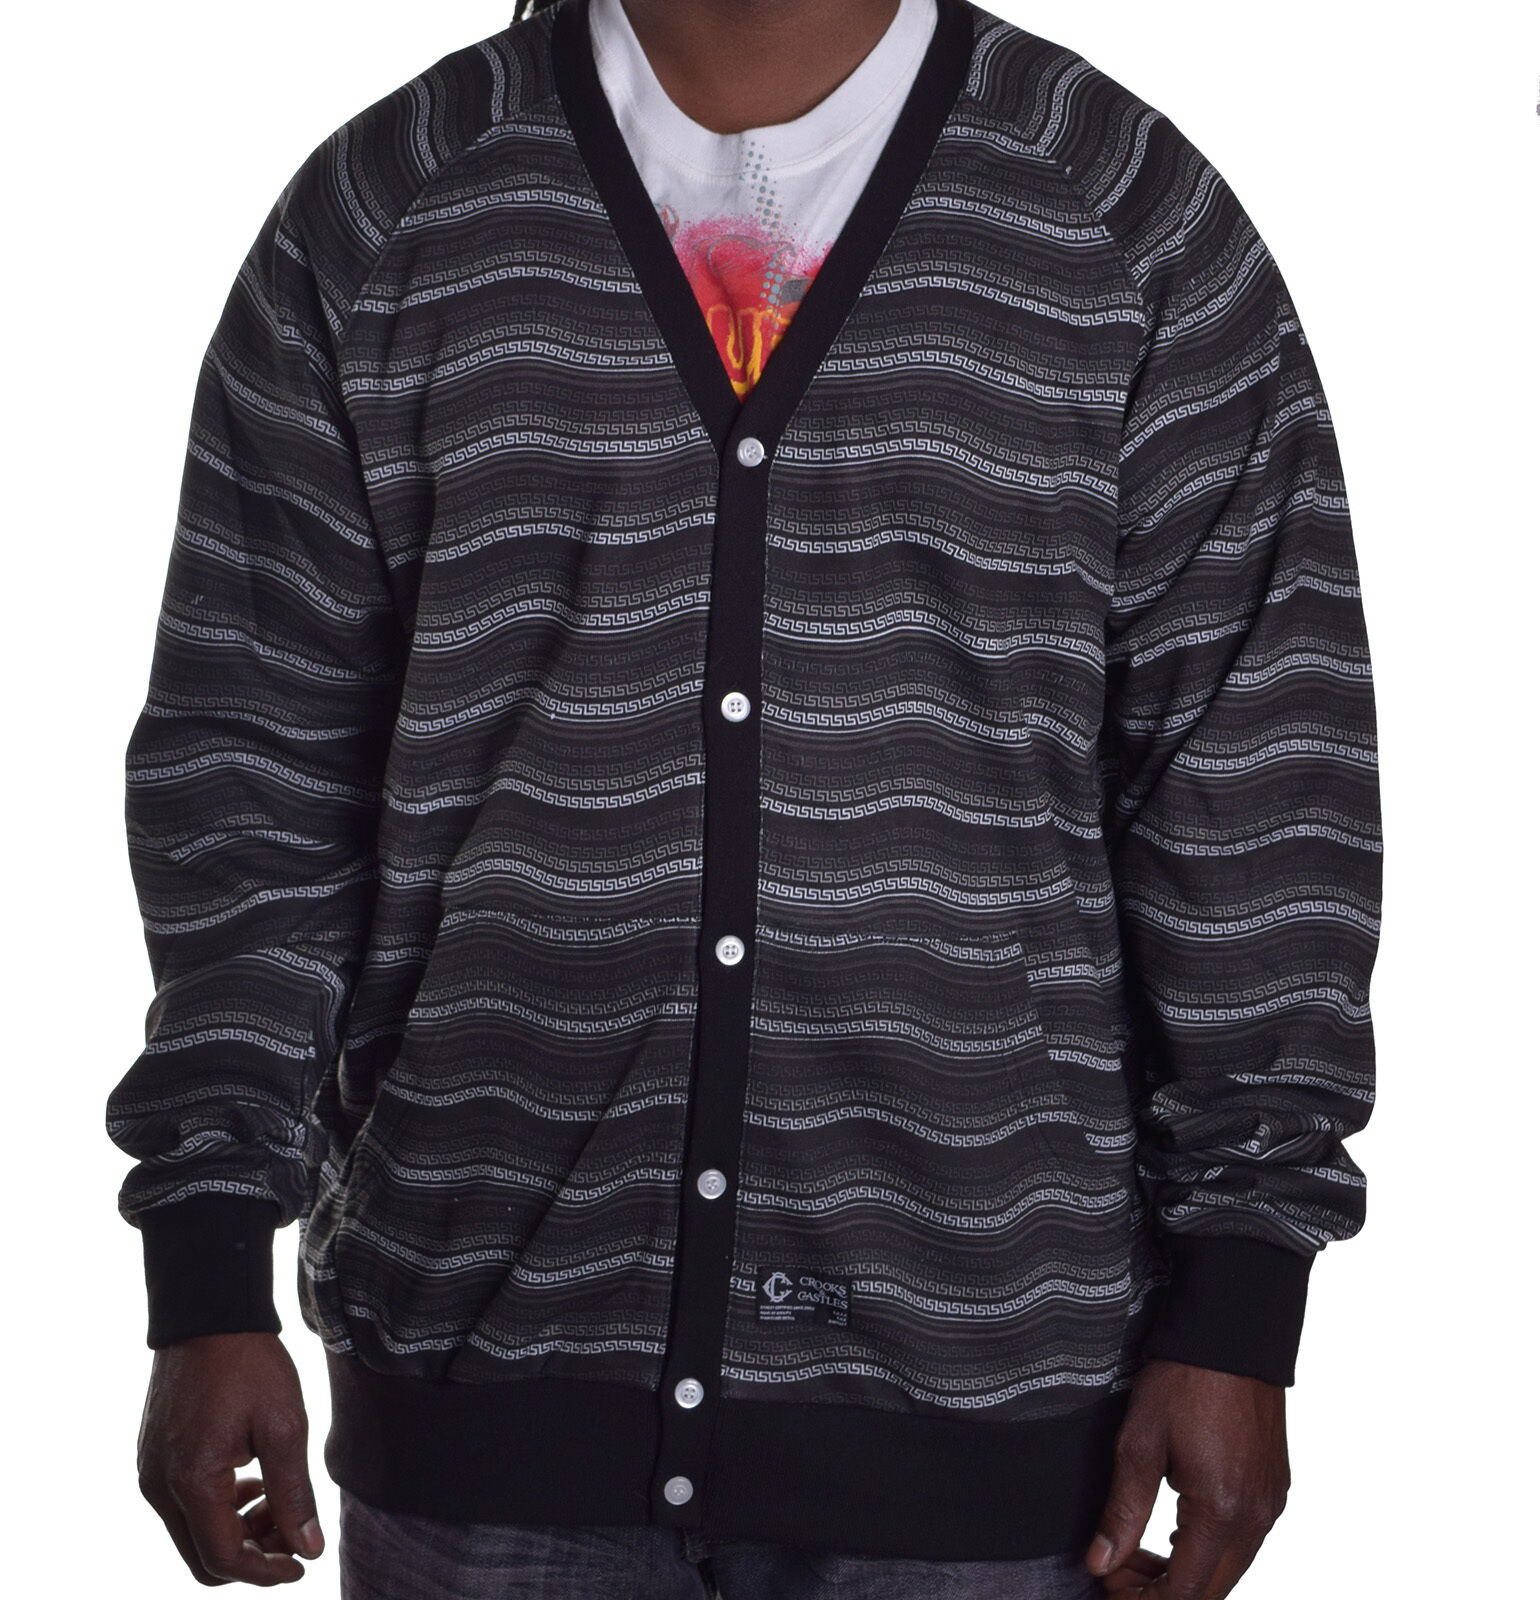 Crooks & Castles Mens Thick Black Cardigan Button up Sweater ...